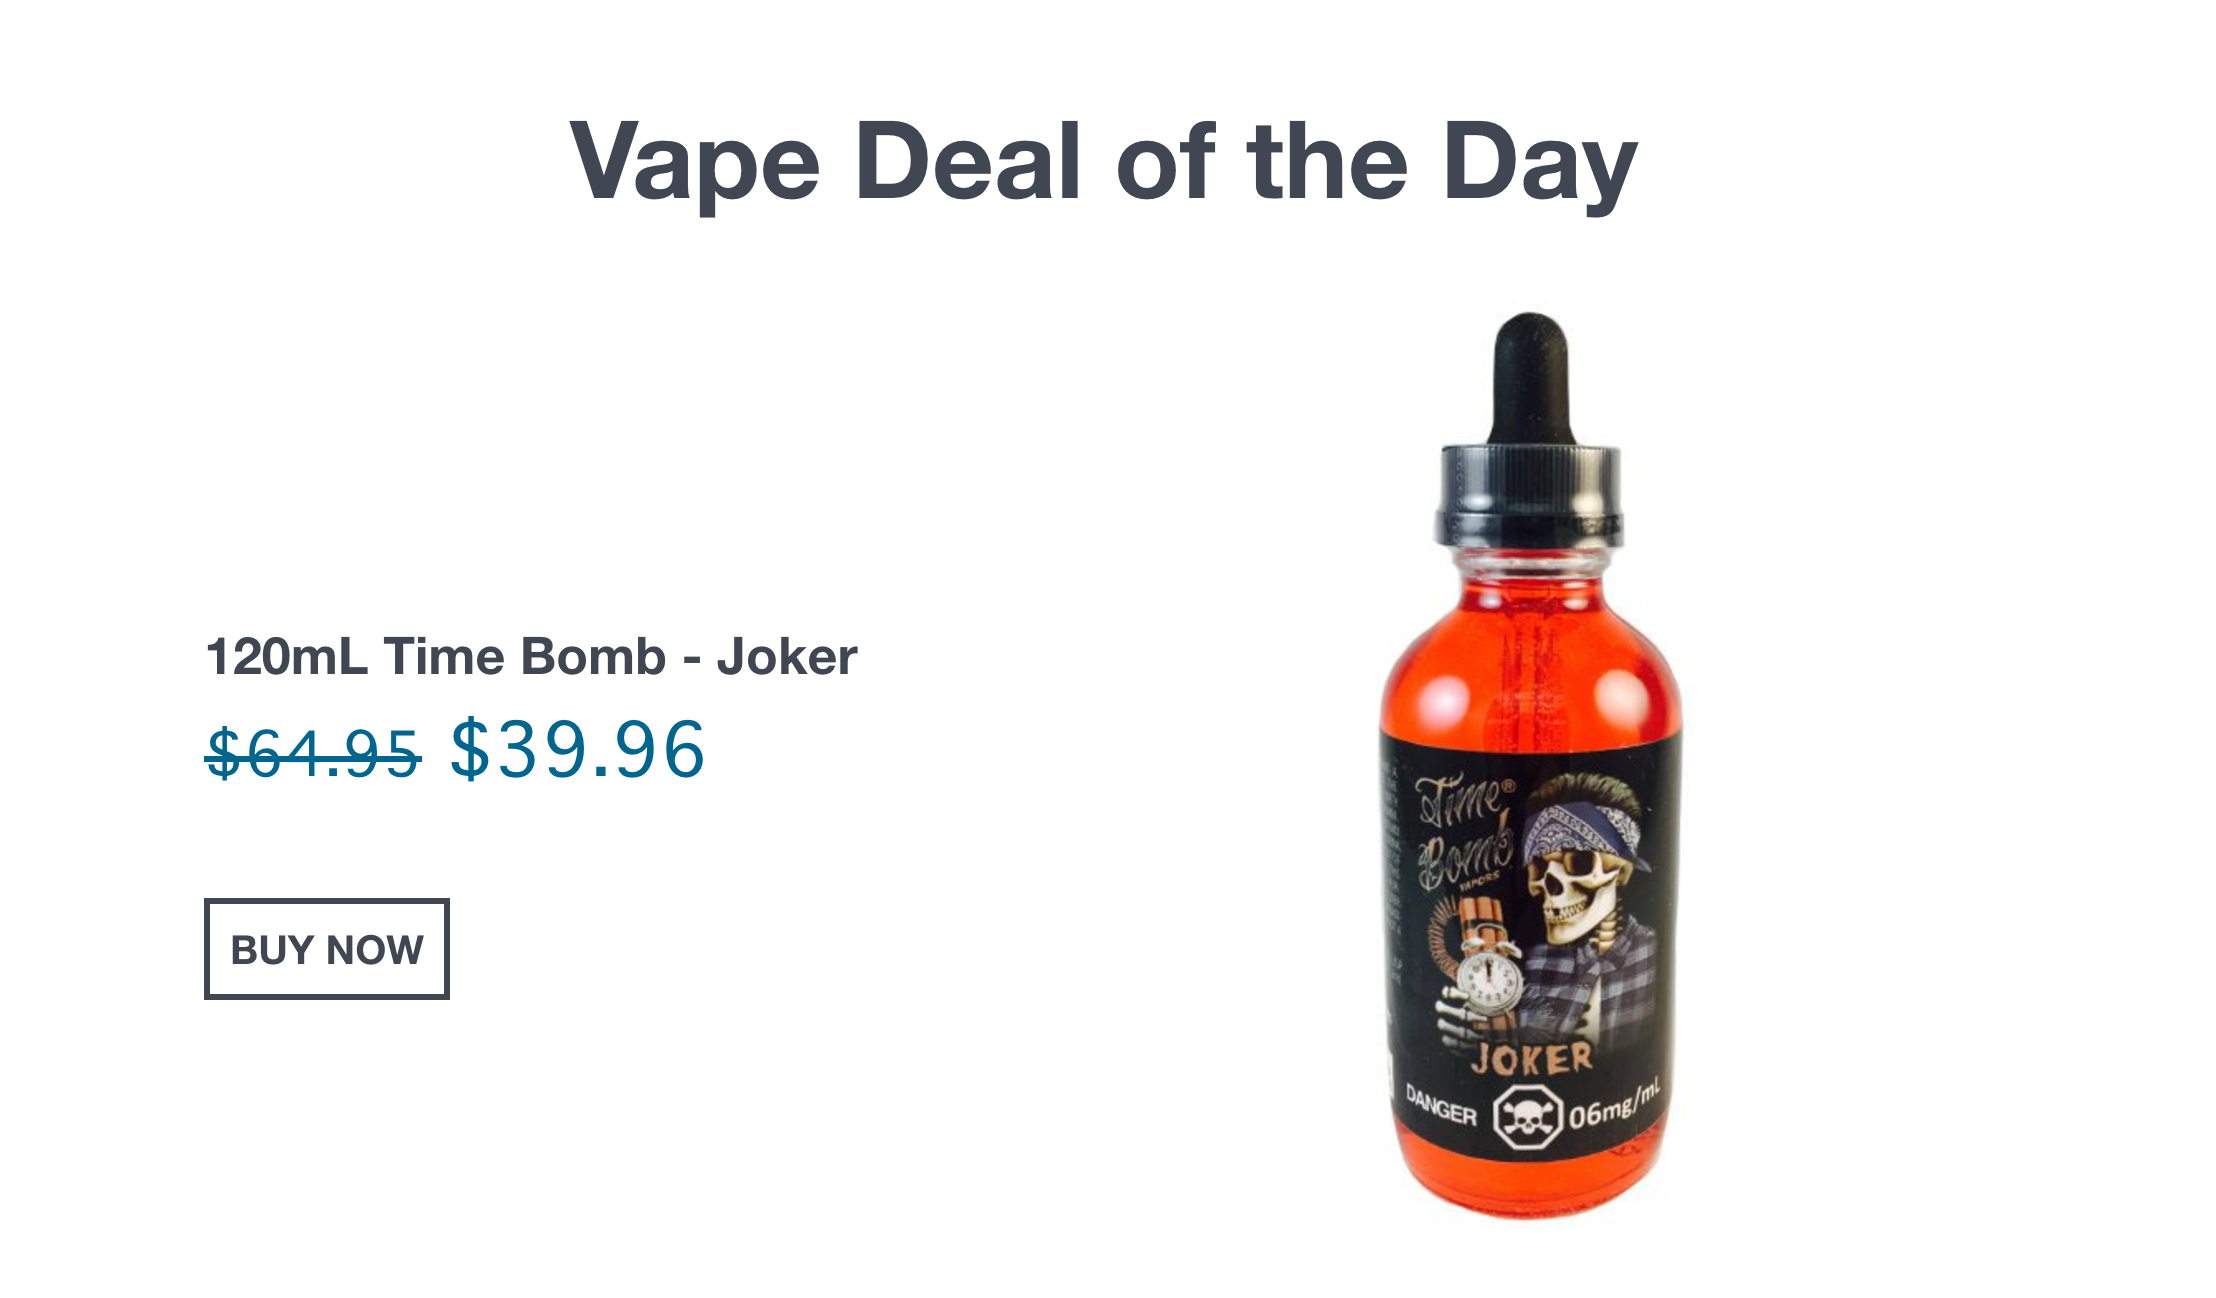 Fuse Vape Deal of the Day